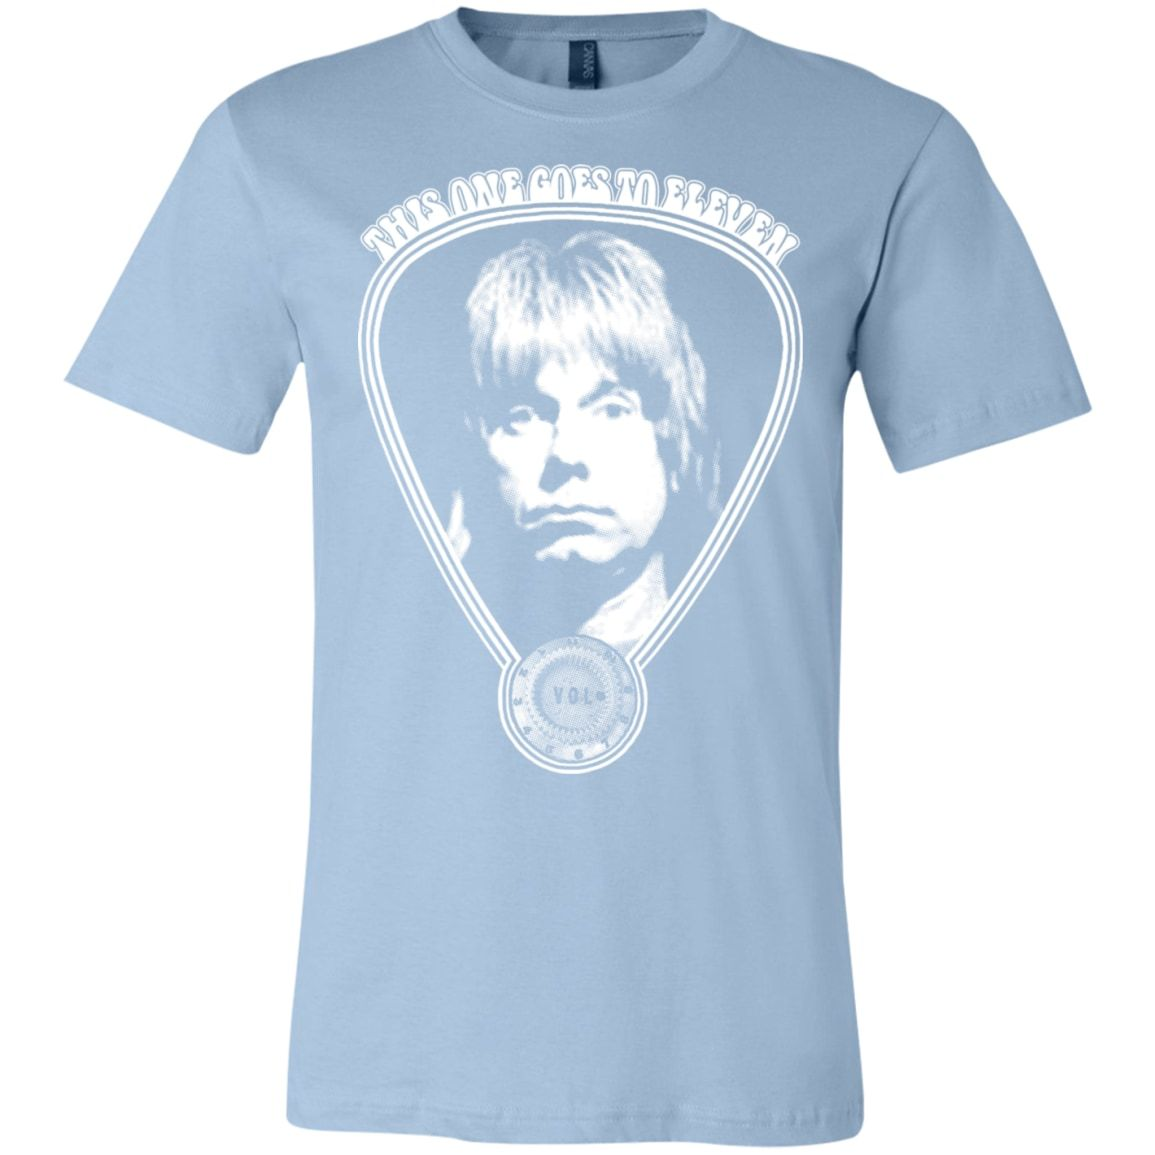 2e0508bd9 Vintage Spinal Tap Movie T-Shirt - Marshall Amp Knob - This One Goes ...